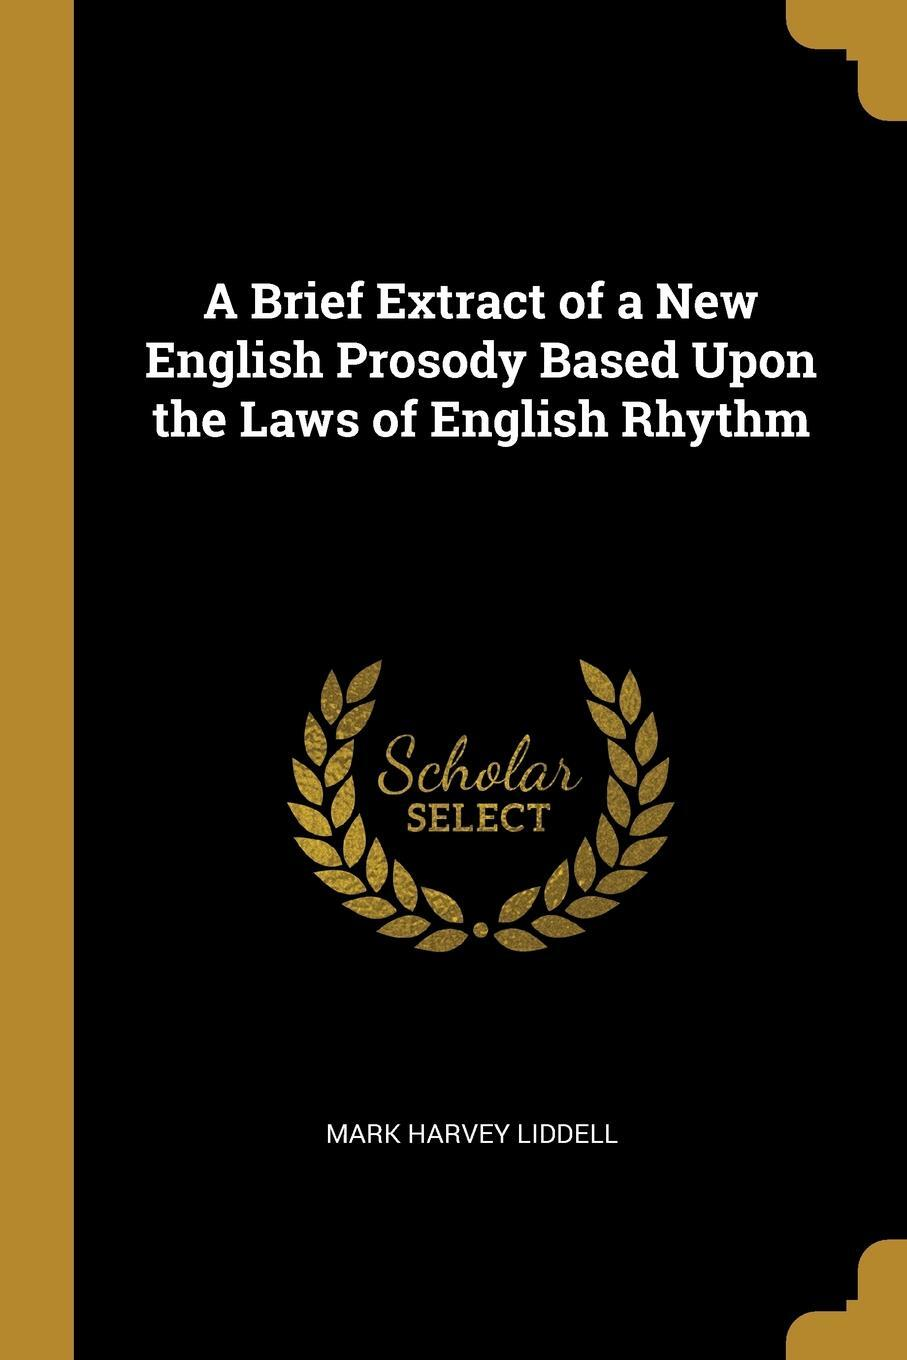 Mark Harvey Liddell. A Brief Extract of a New English Prosody Based Upon the Laws of English Rhythm